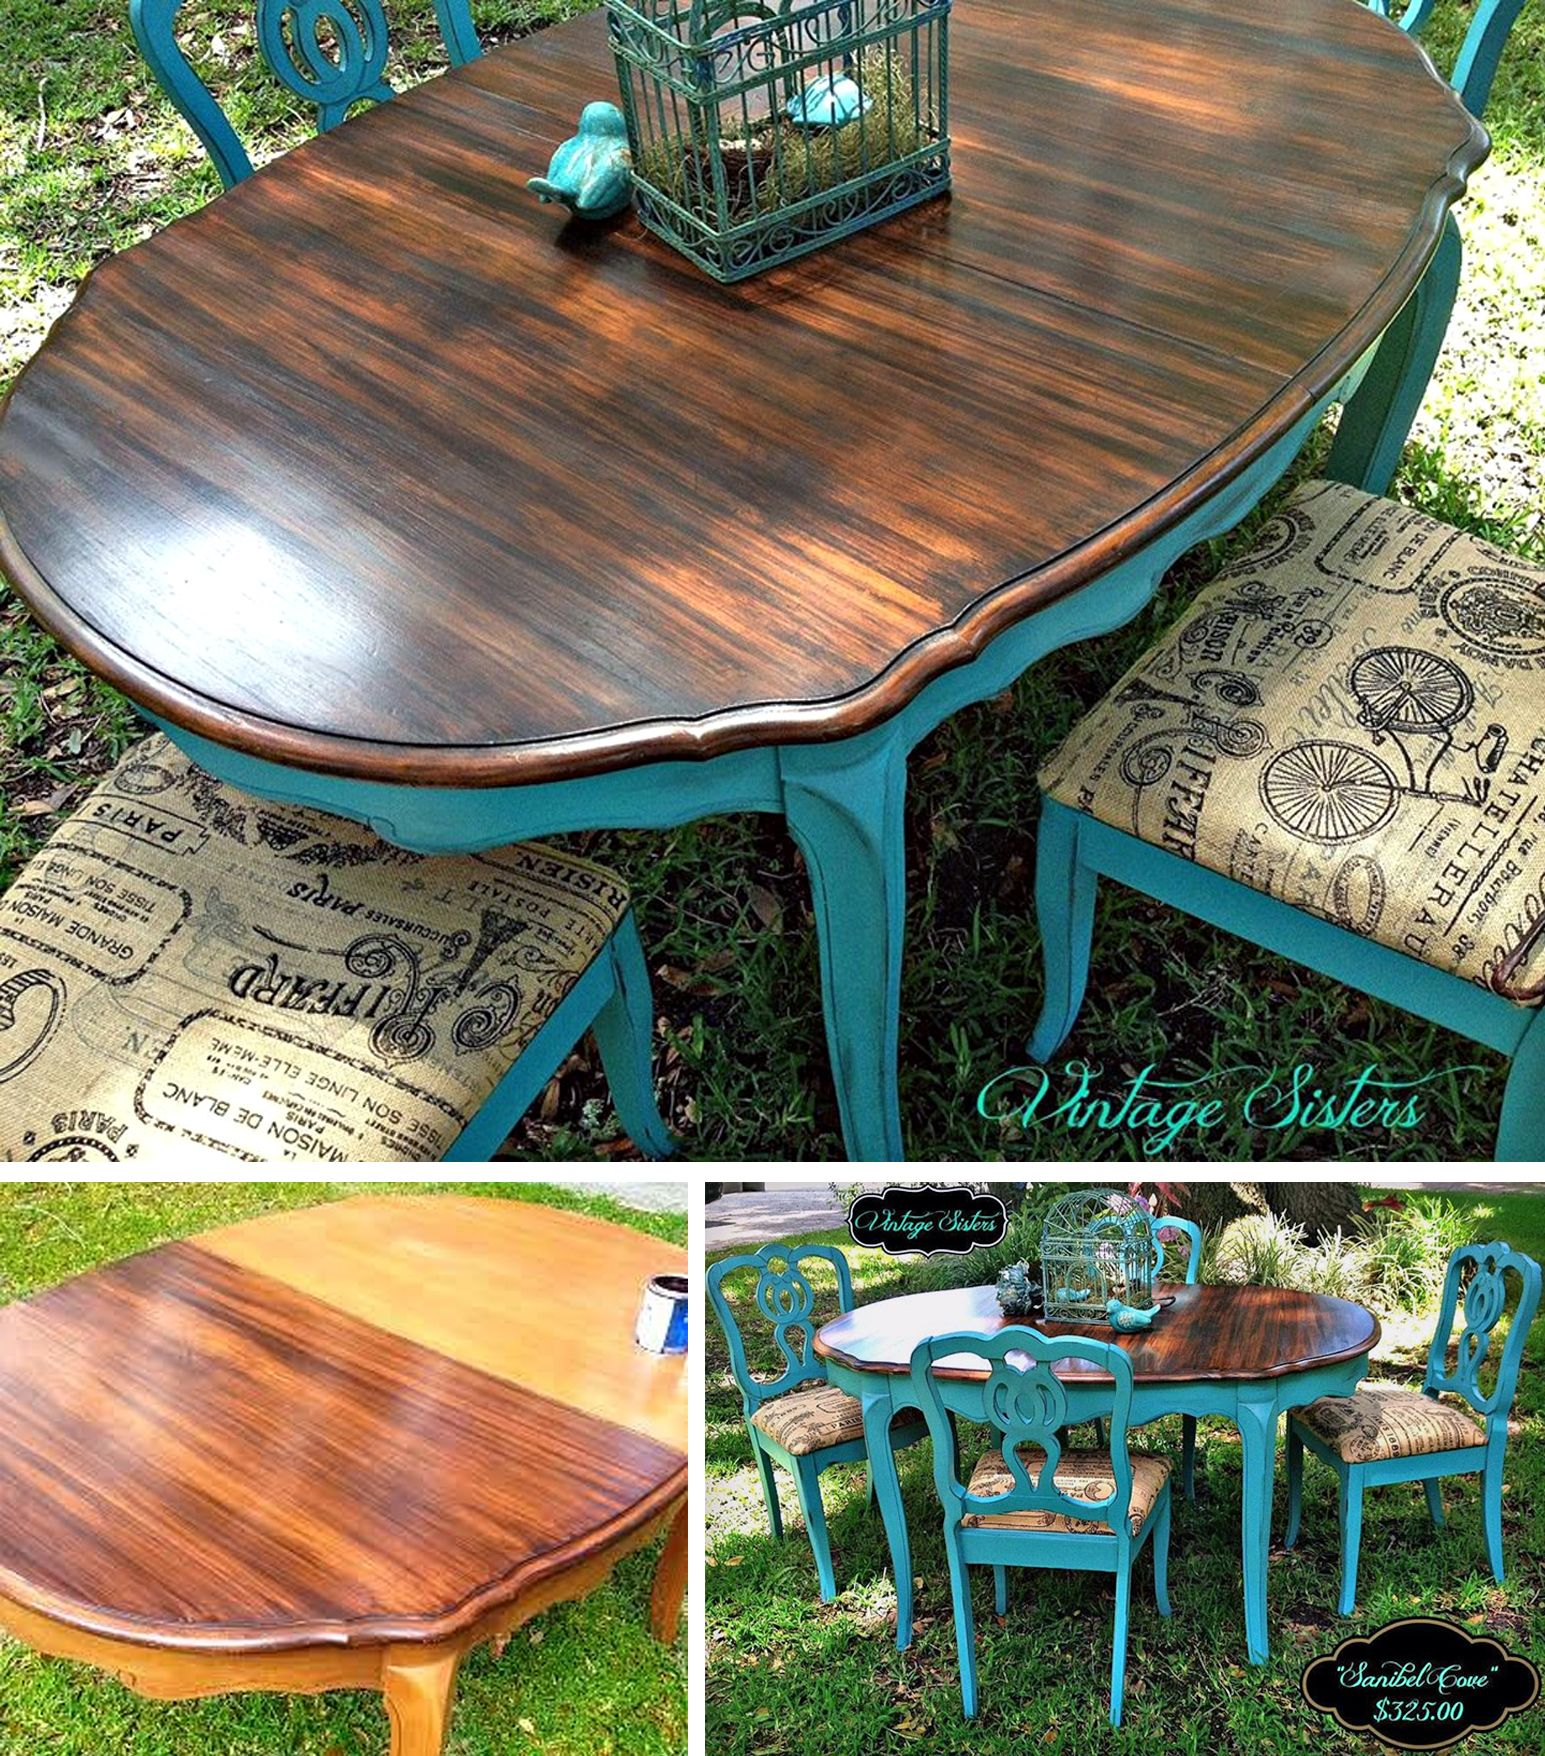 This ball and claw foot dining table & French straw seat chairs is